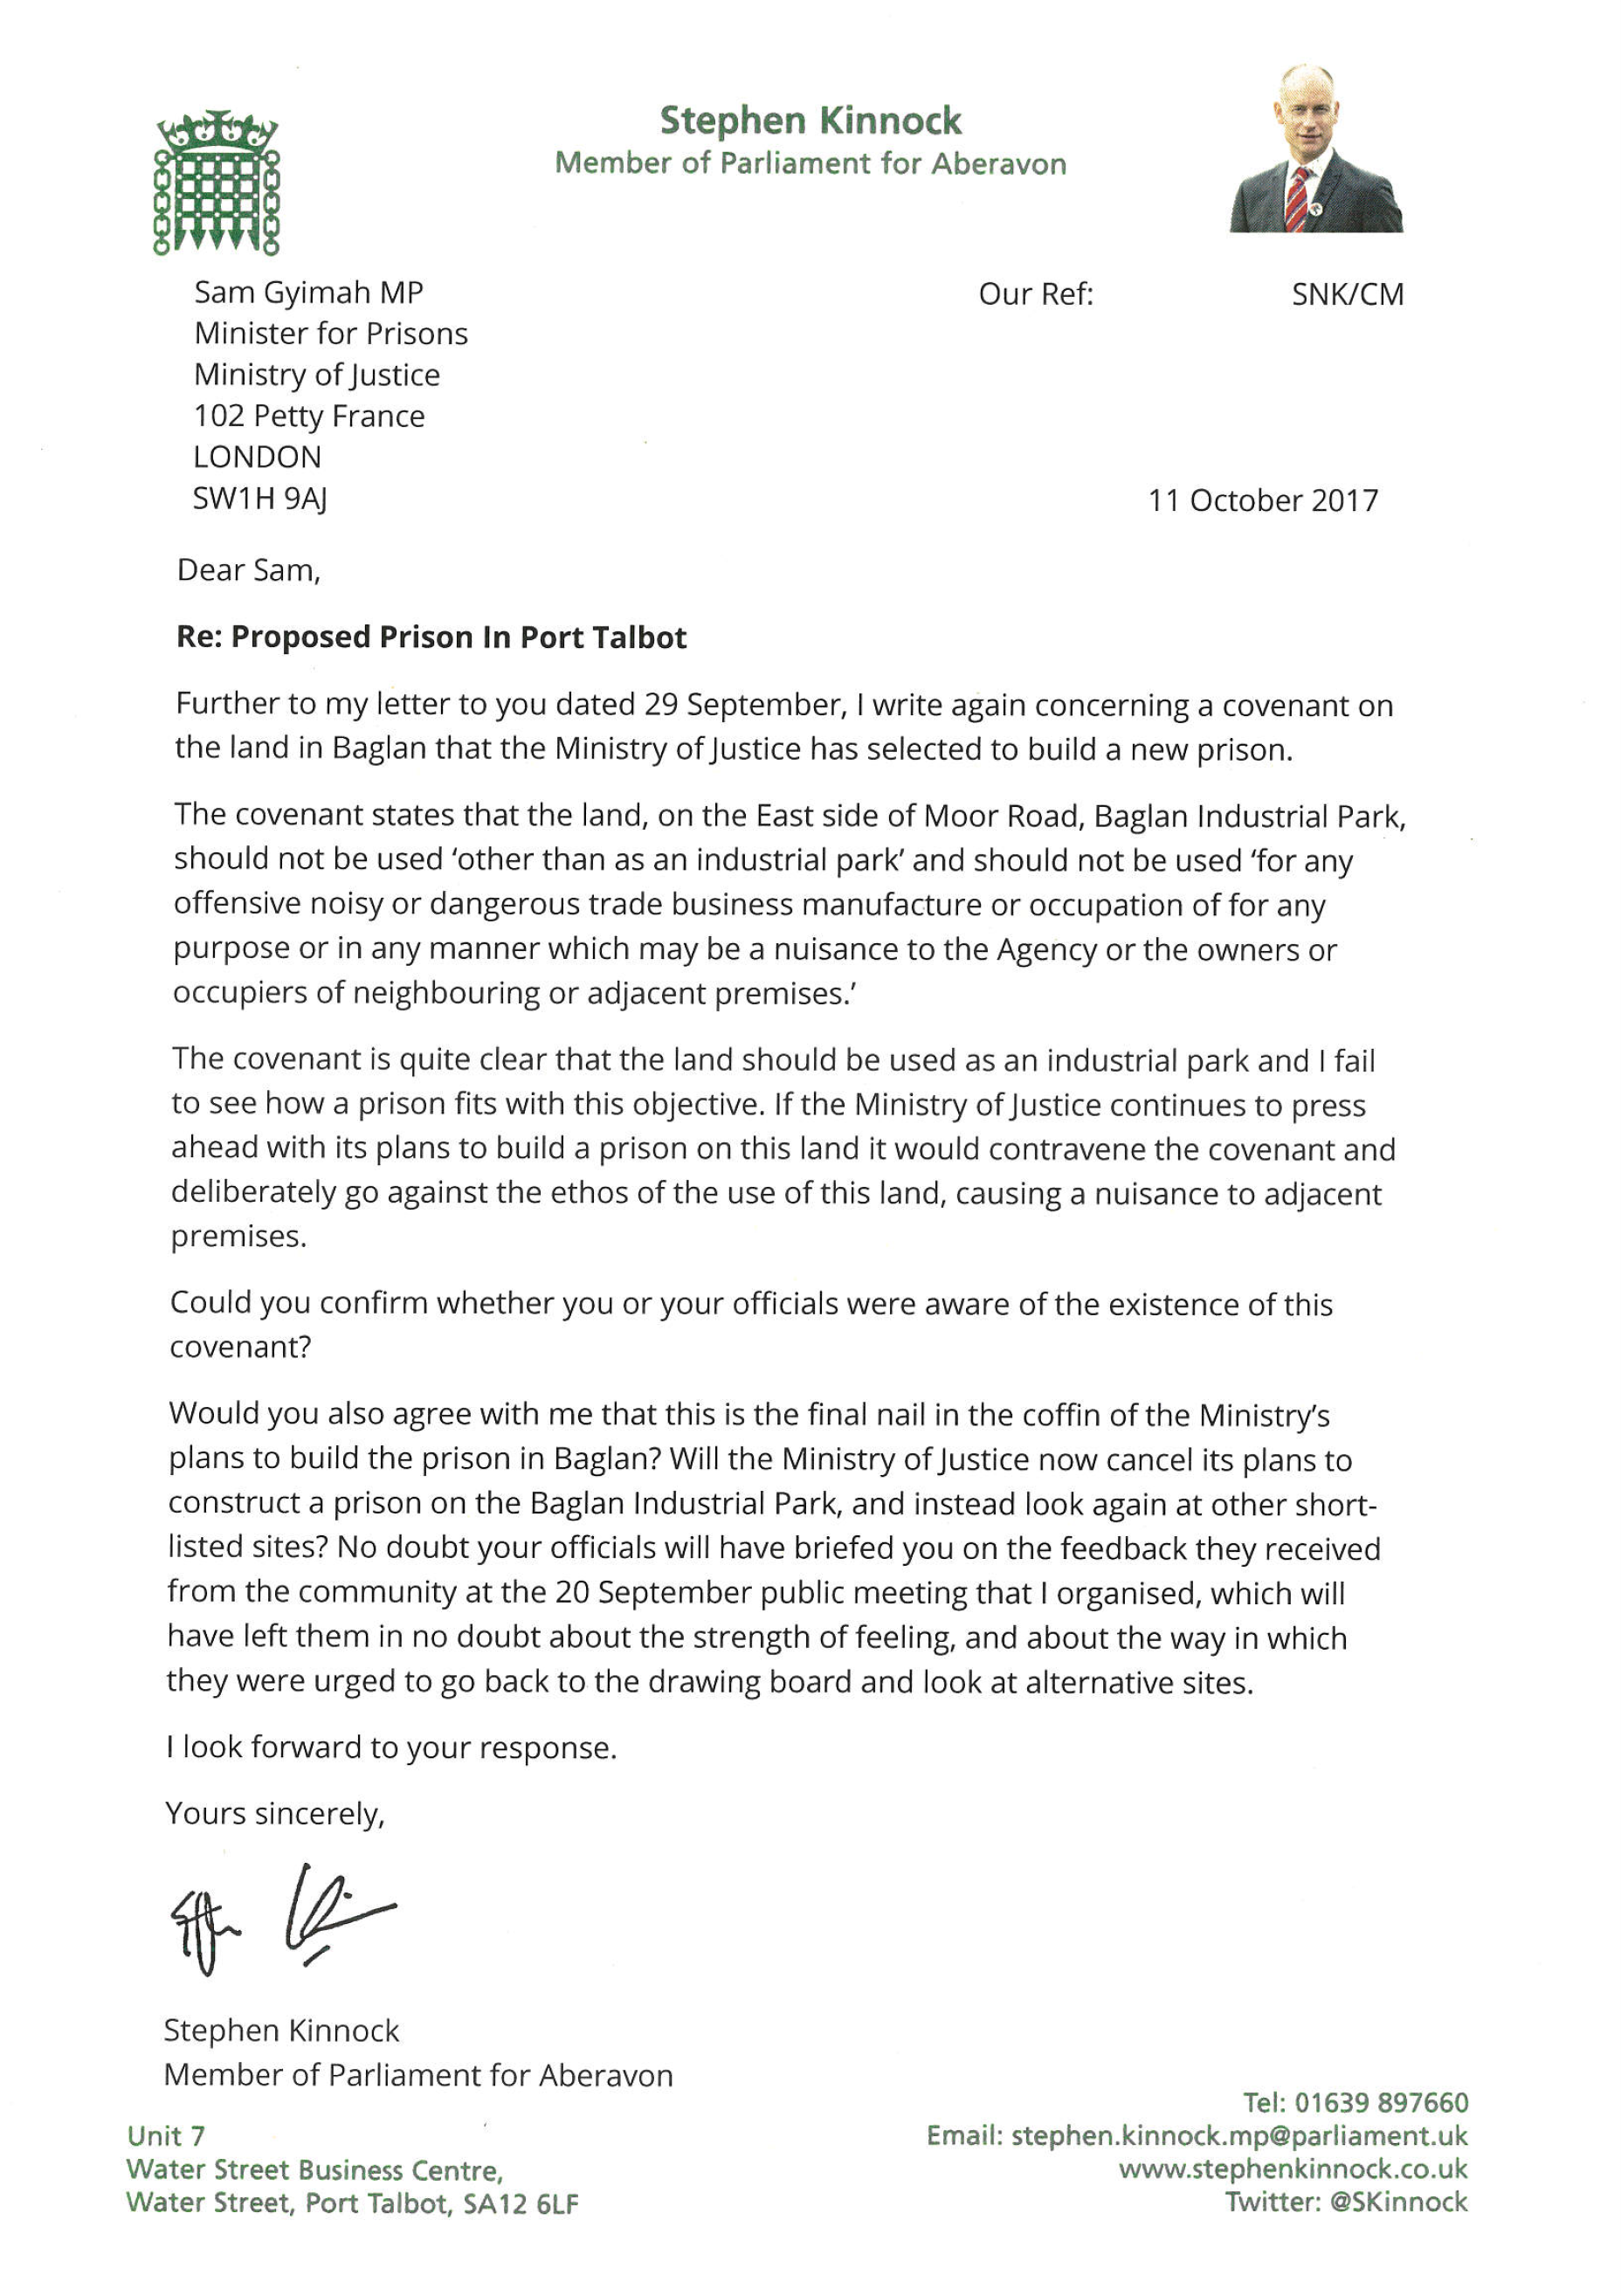 Letter_to_Sam_Gyimah_11102017.png